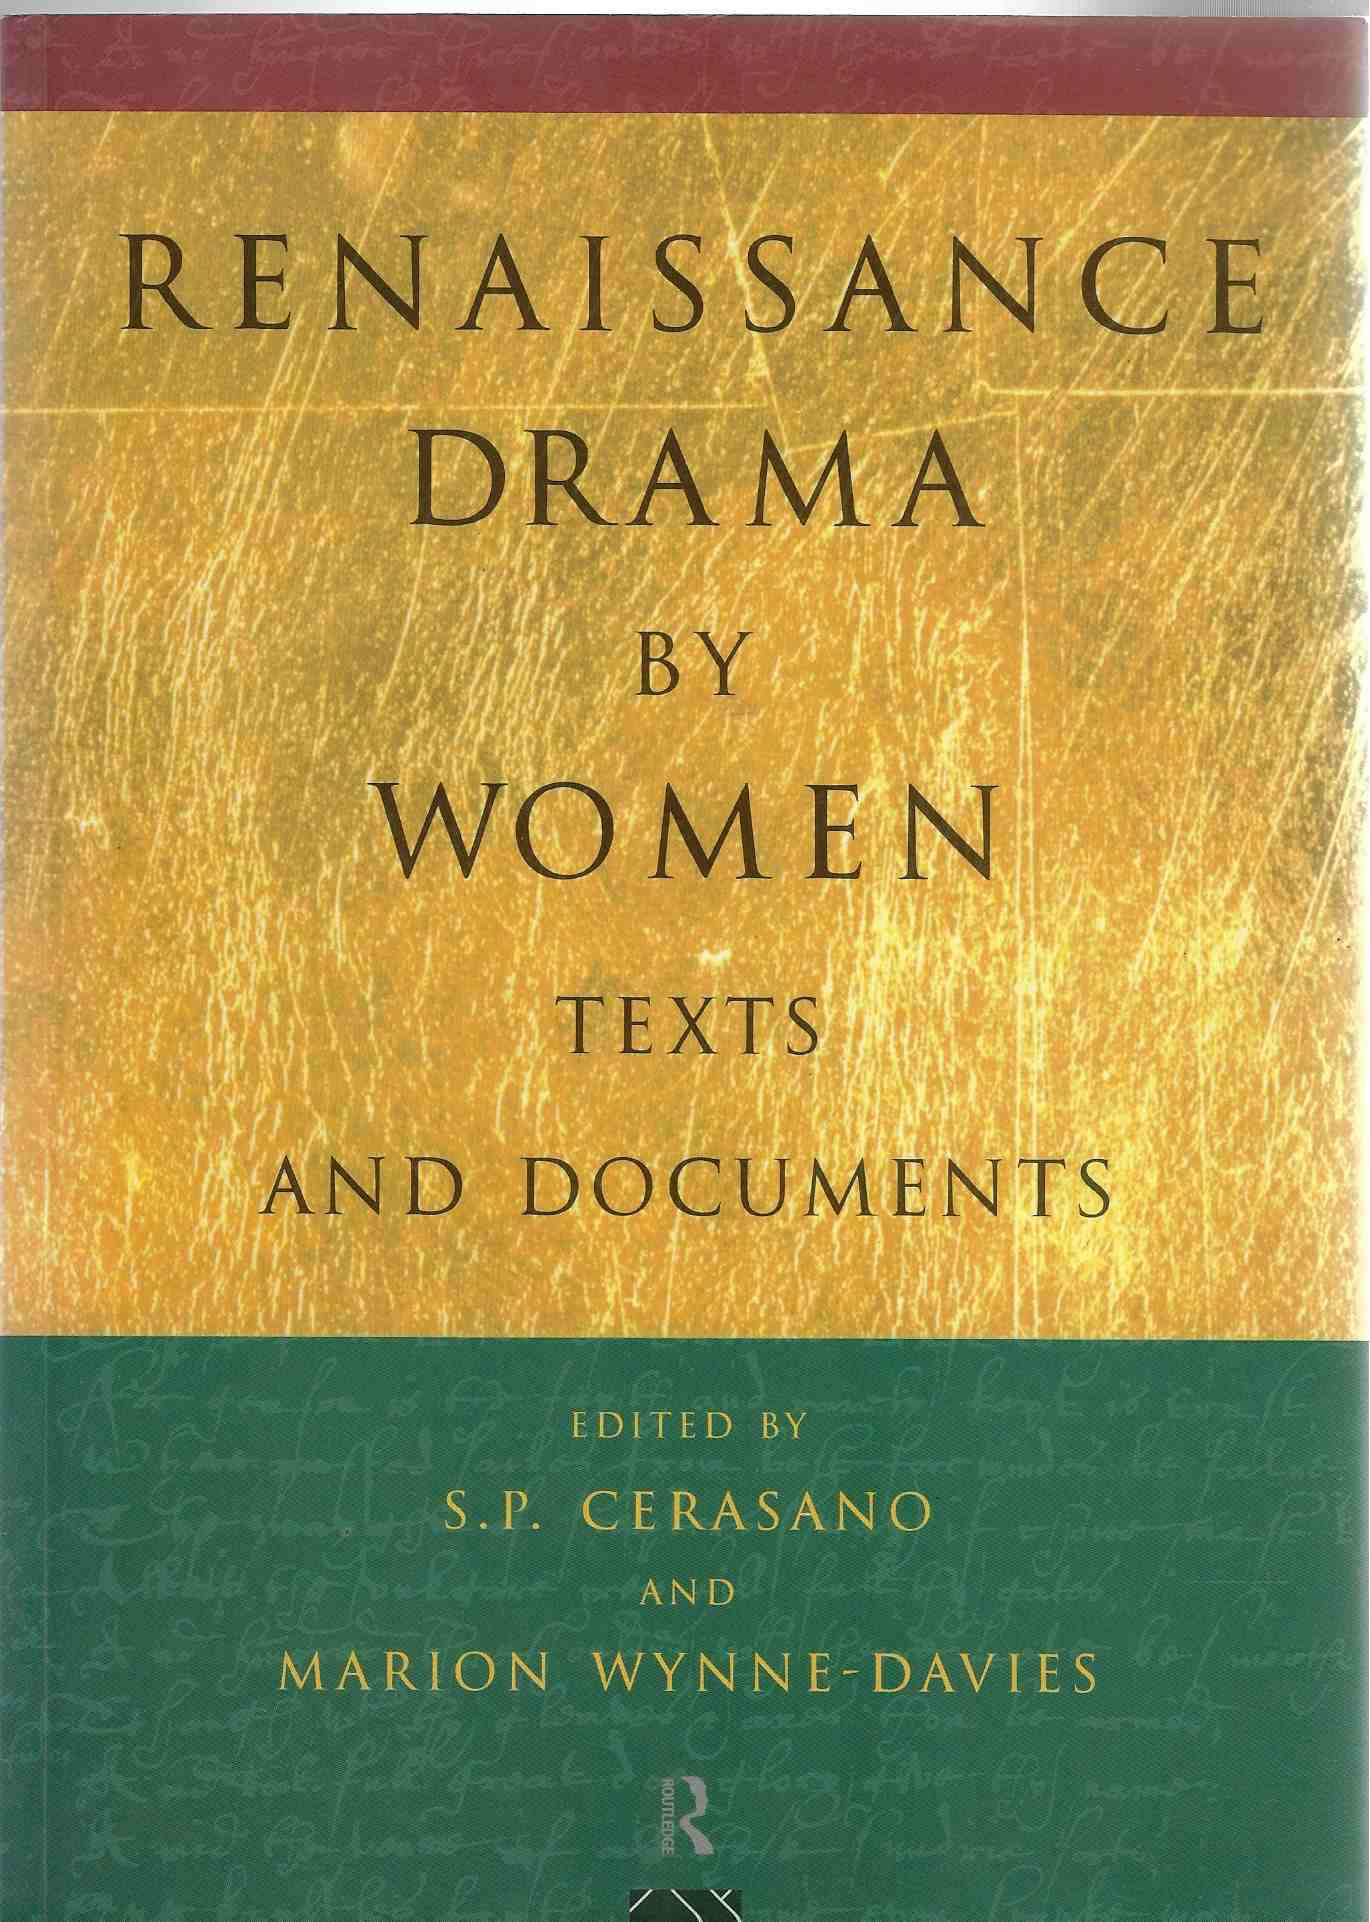 Image for Renaissance Drama by Women Texts and Documents